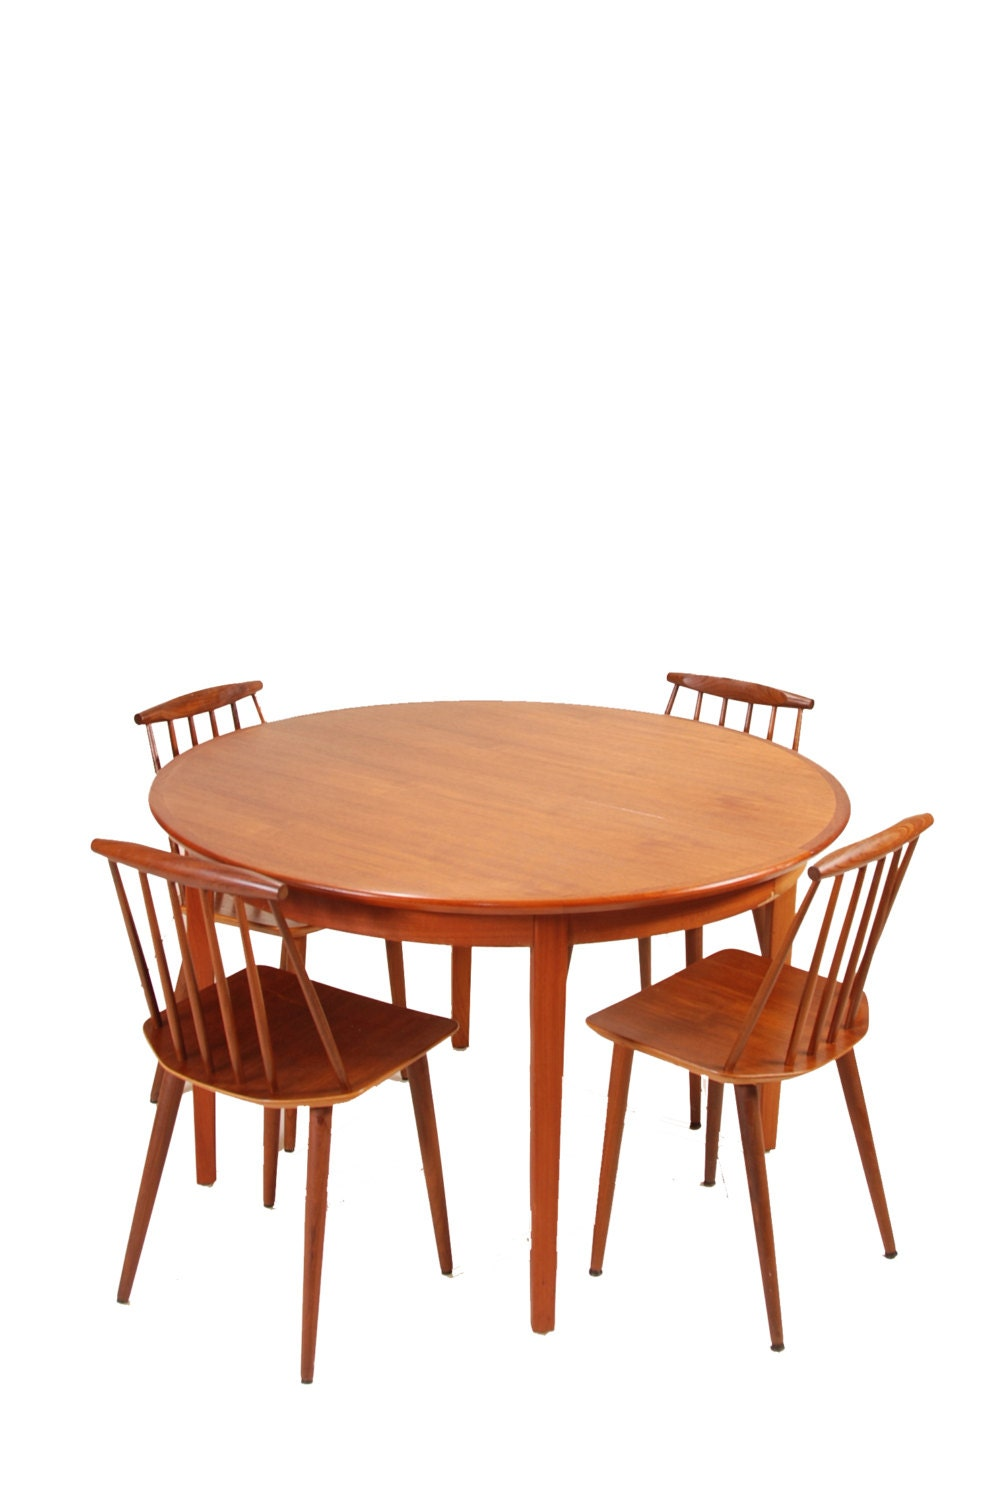 12 person modern round danish teak dining table by motleyla